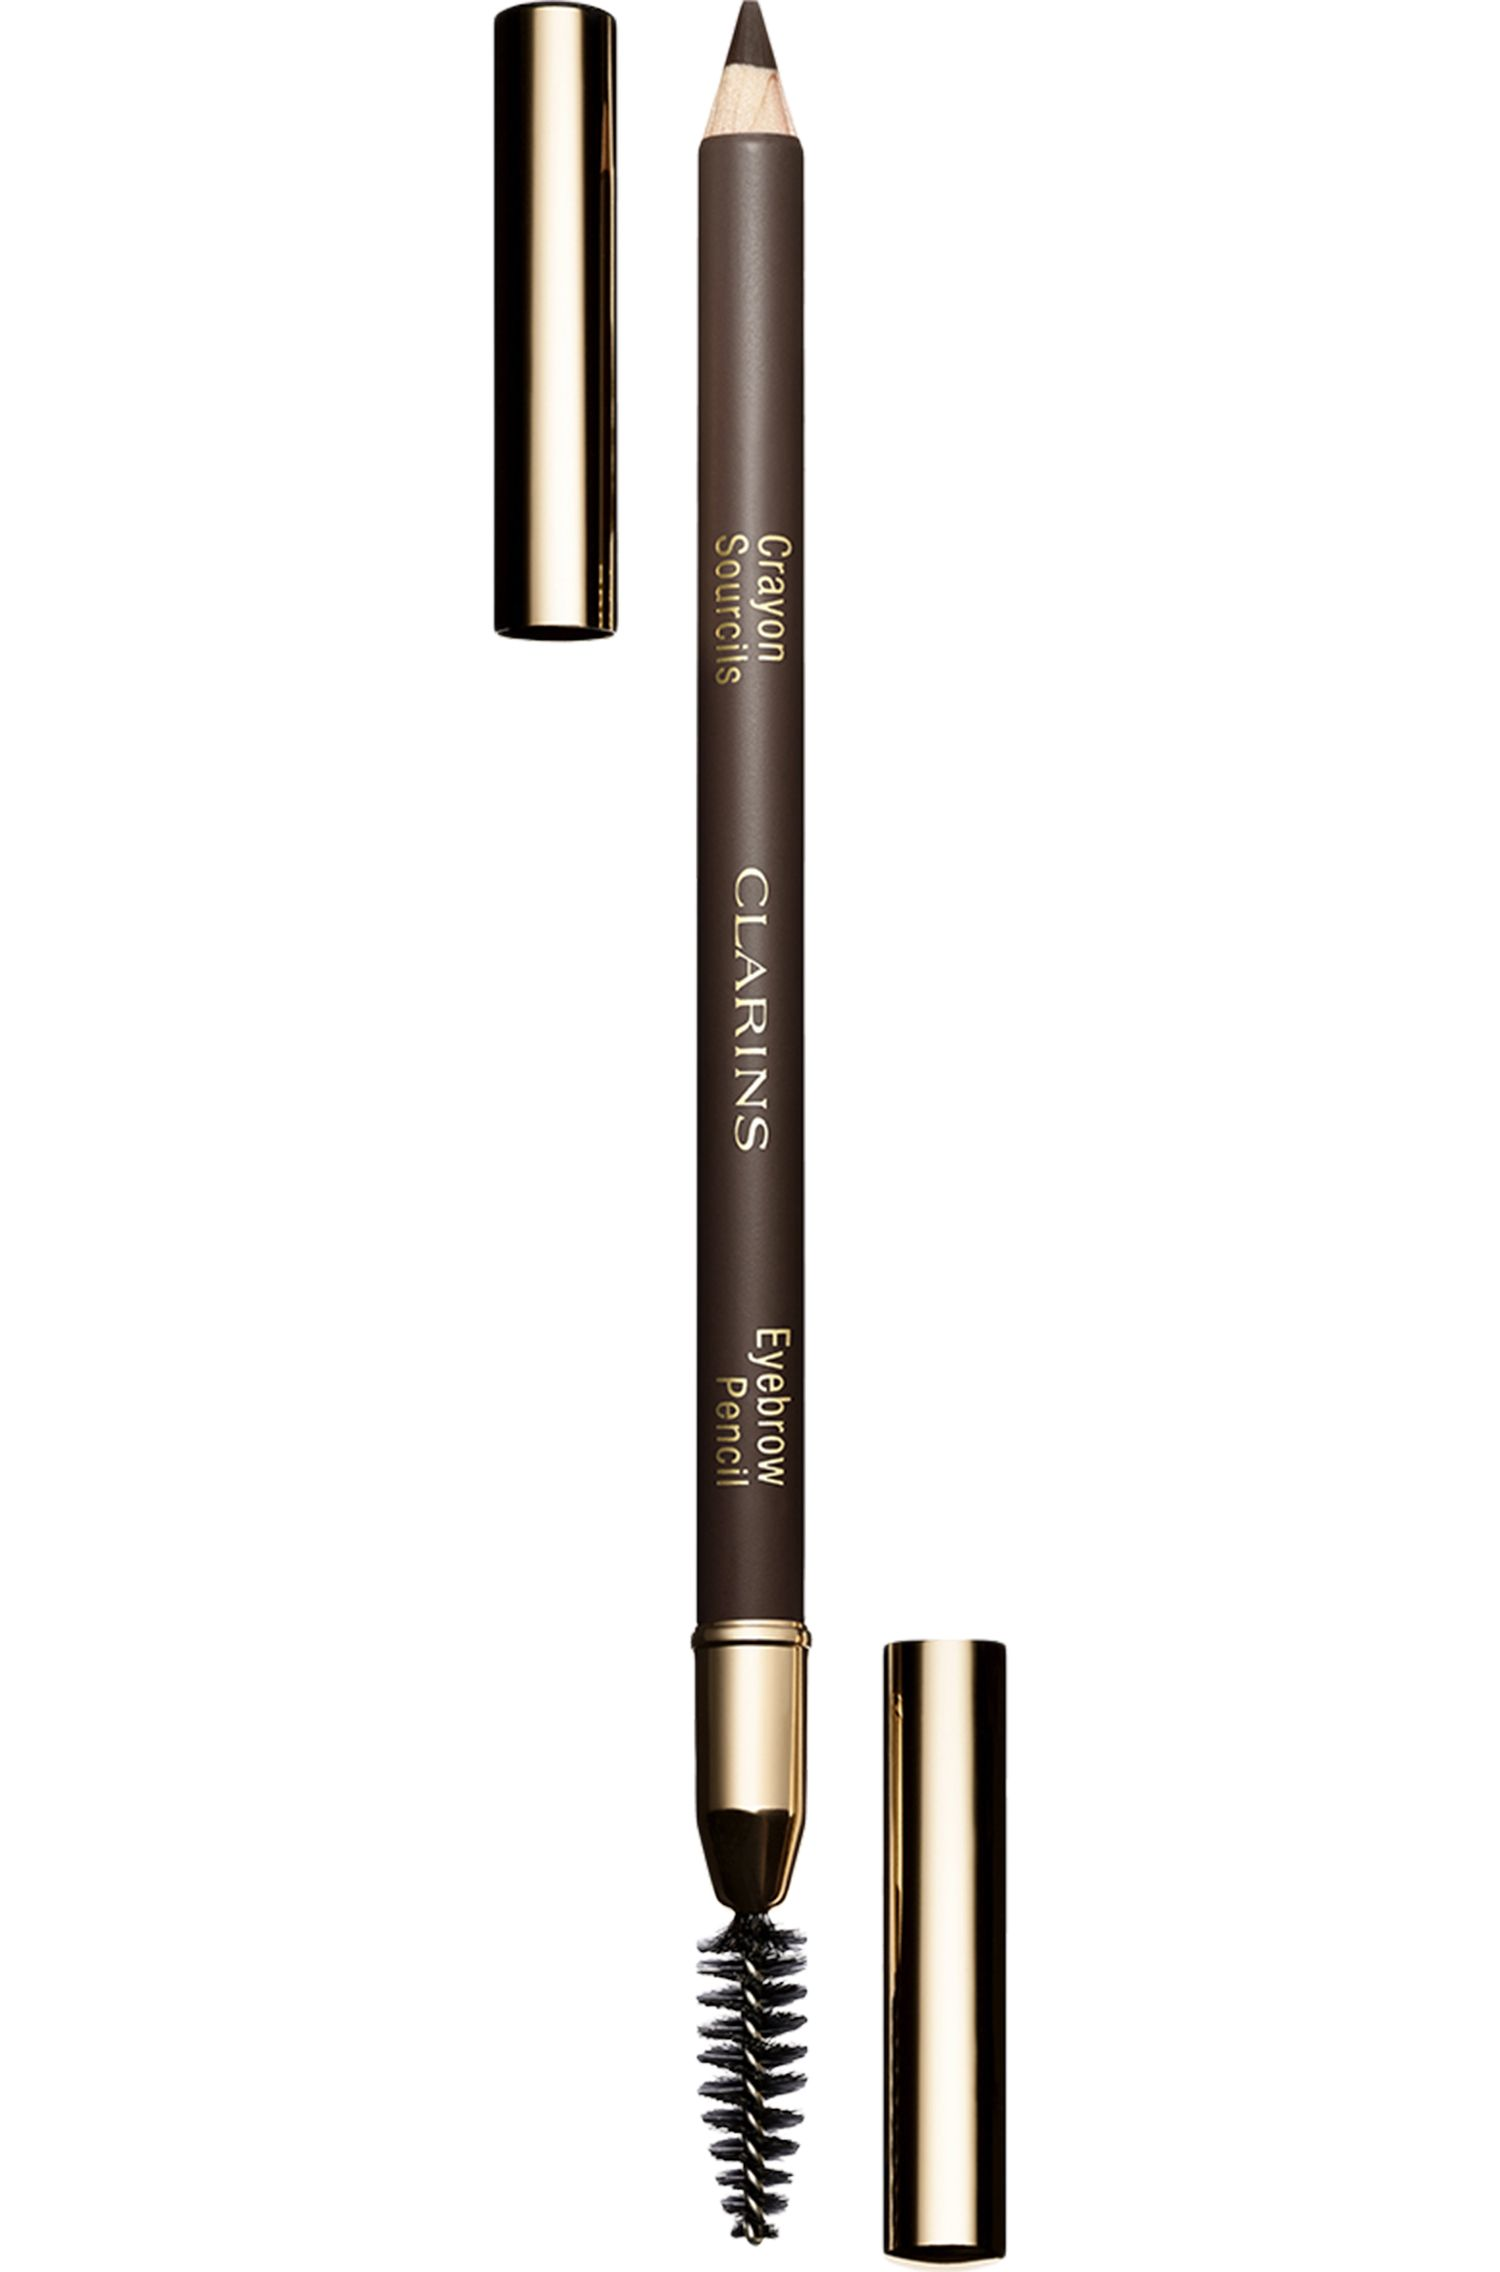 Blissim : Clarins - Crayon sourcils double embout brosse - 02 Light Brown